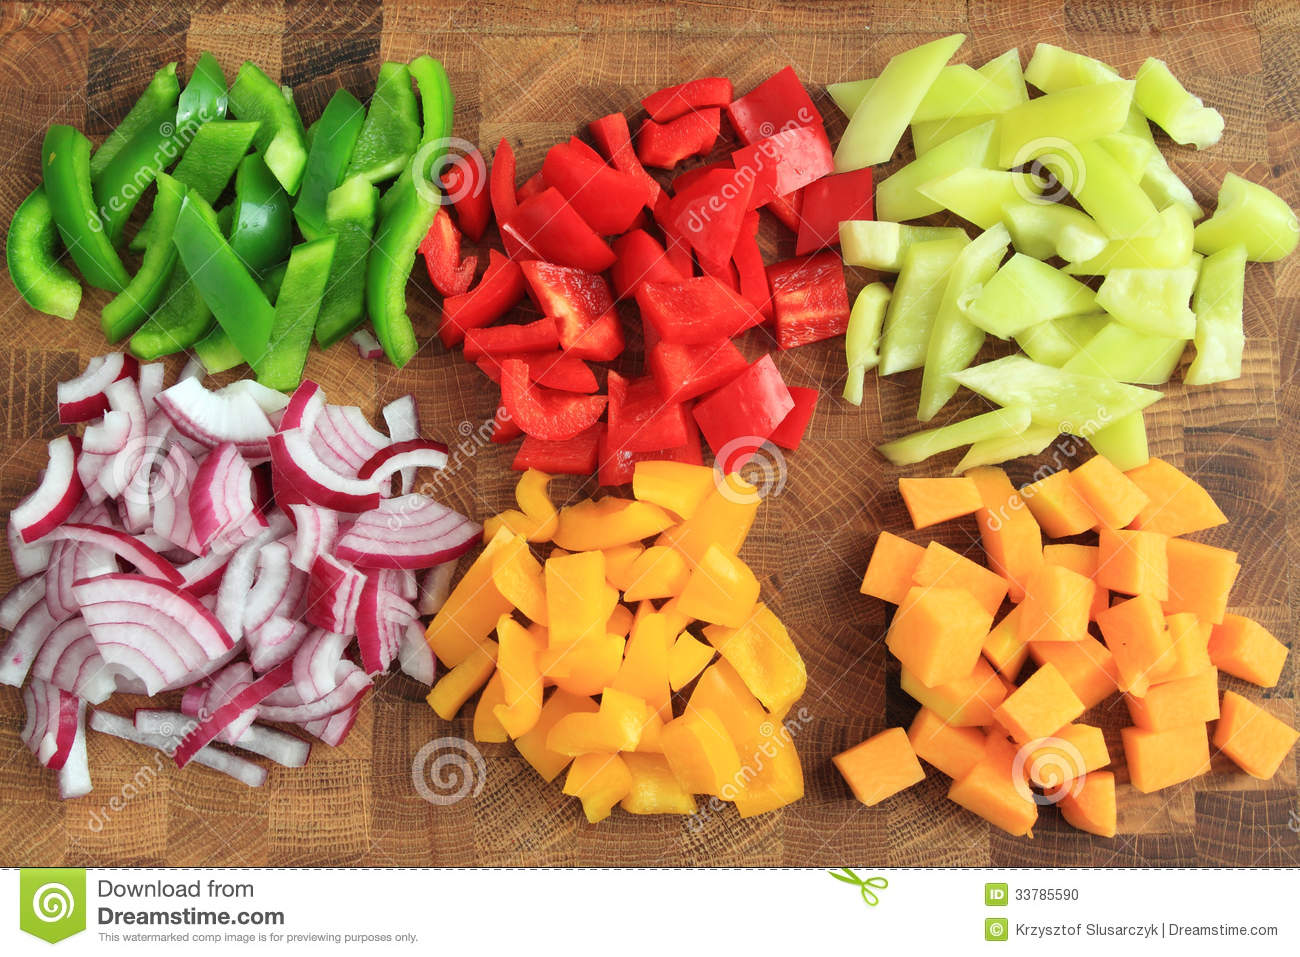 Diced Vegetables Stock Photo - Image: 33785590